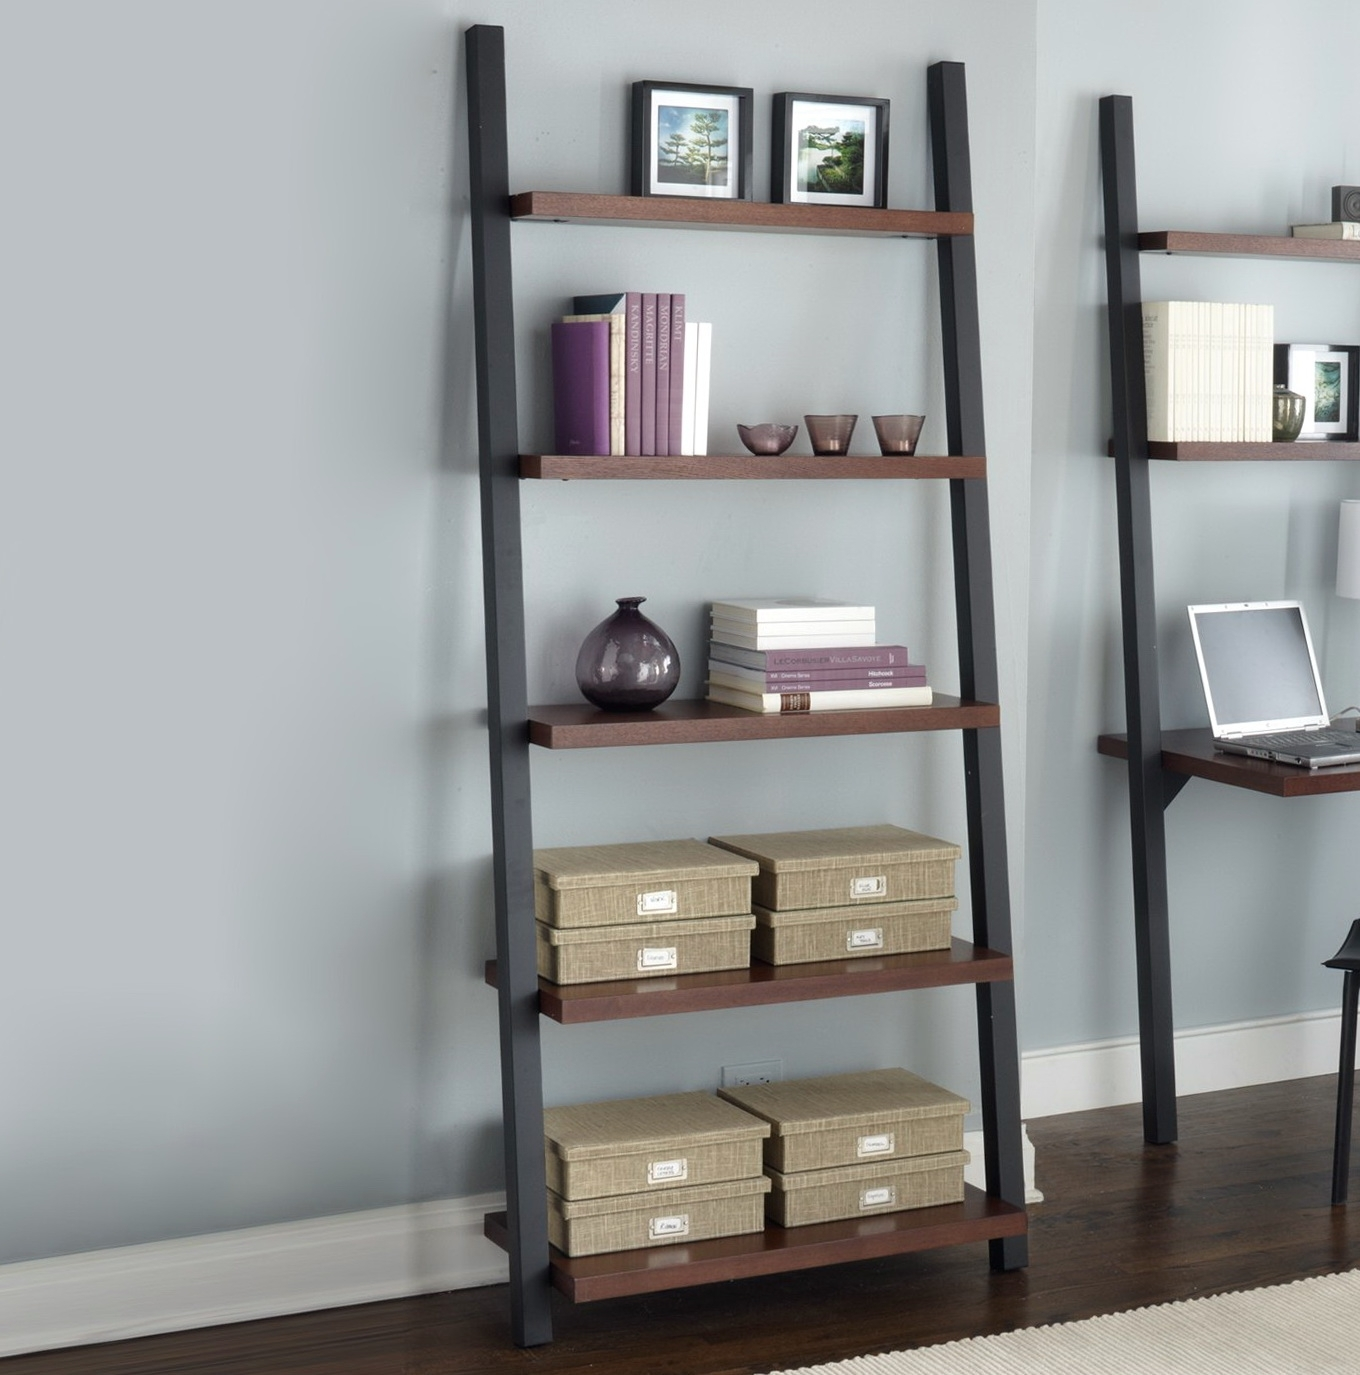 shelves info leaning bookshelf black decoration paml high ikea inch step ladder shelf